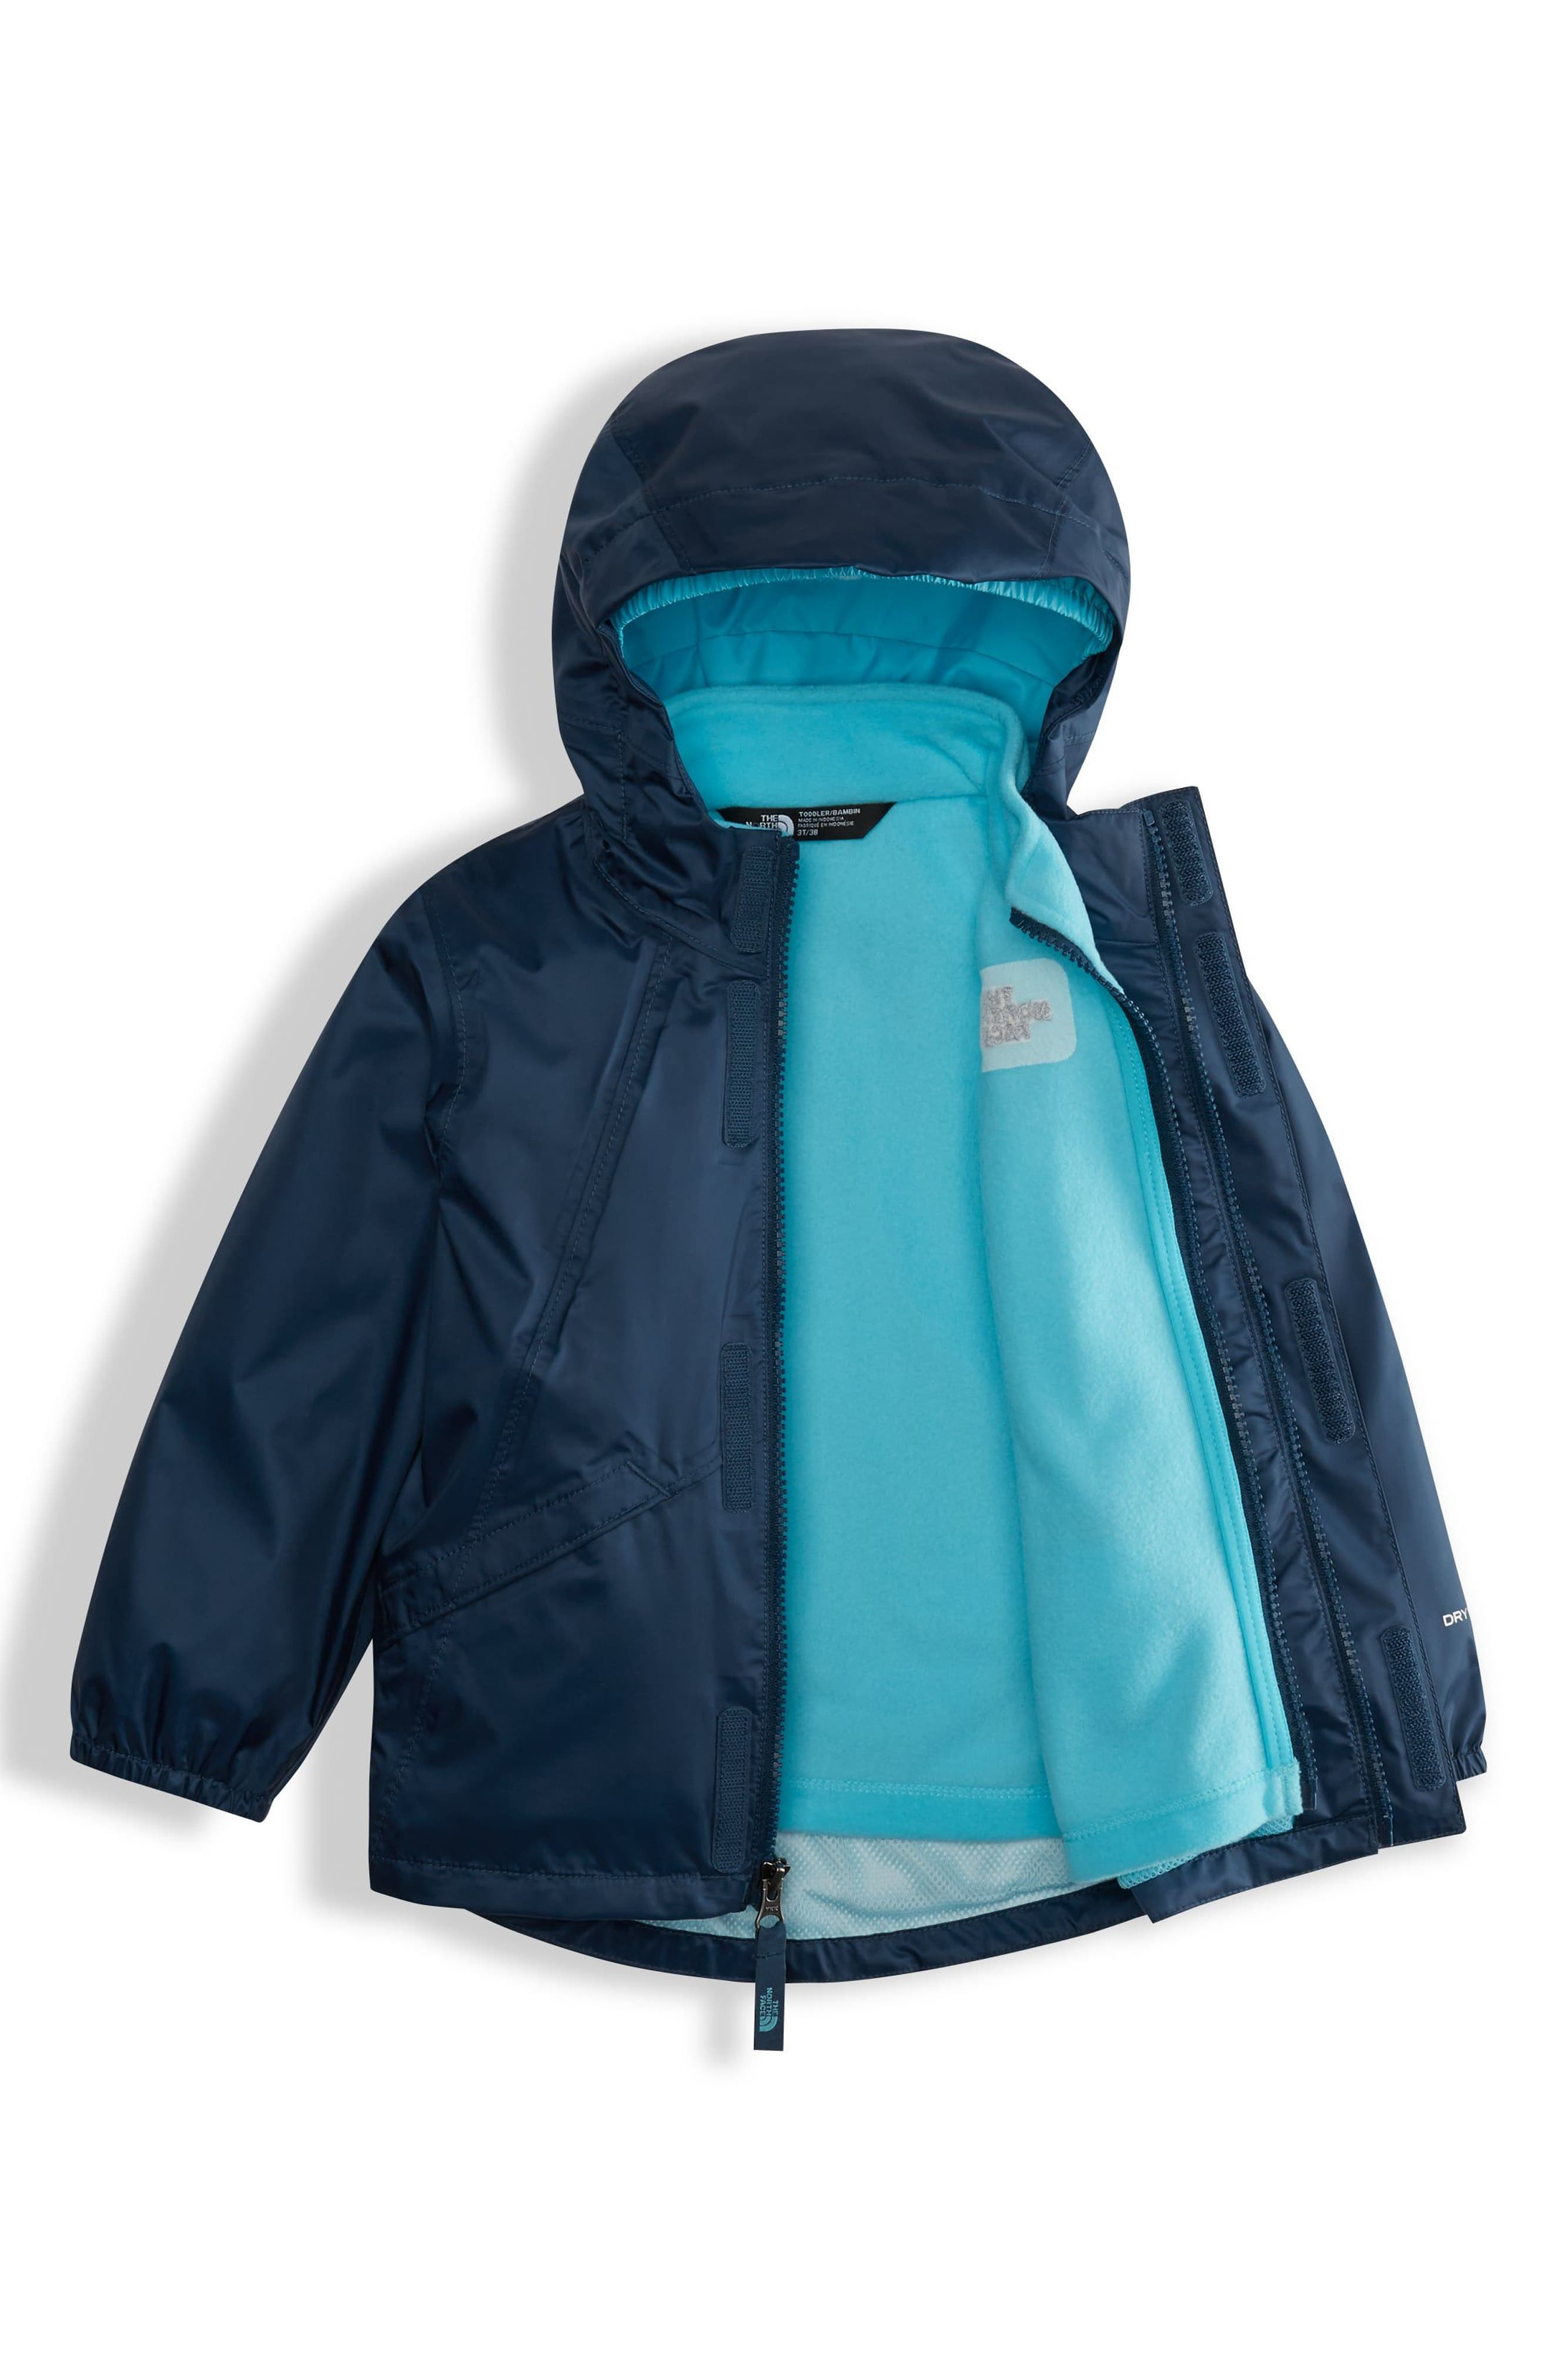 Stormy Rain Triclimate<sup>®</sup> Waterproof 3-in-1 Jacket,                             Alternate thumbnail 4, color,                             441